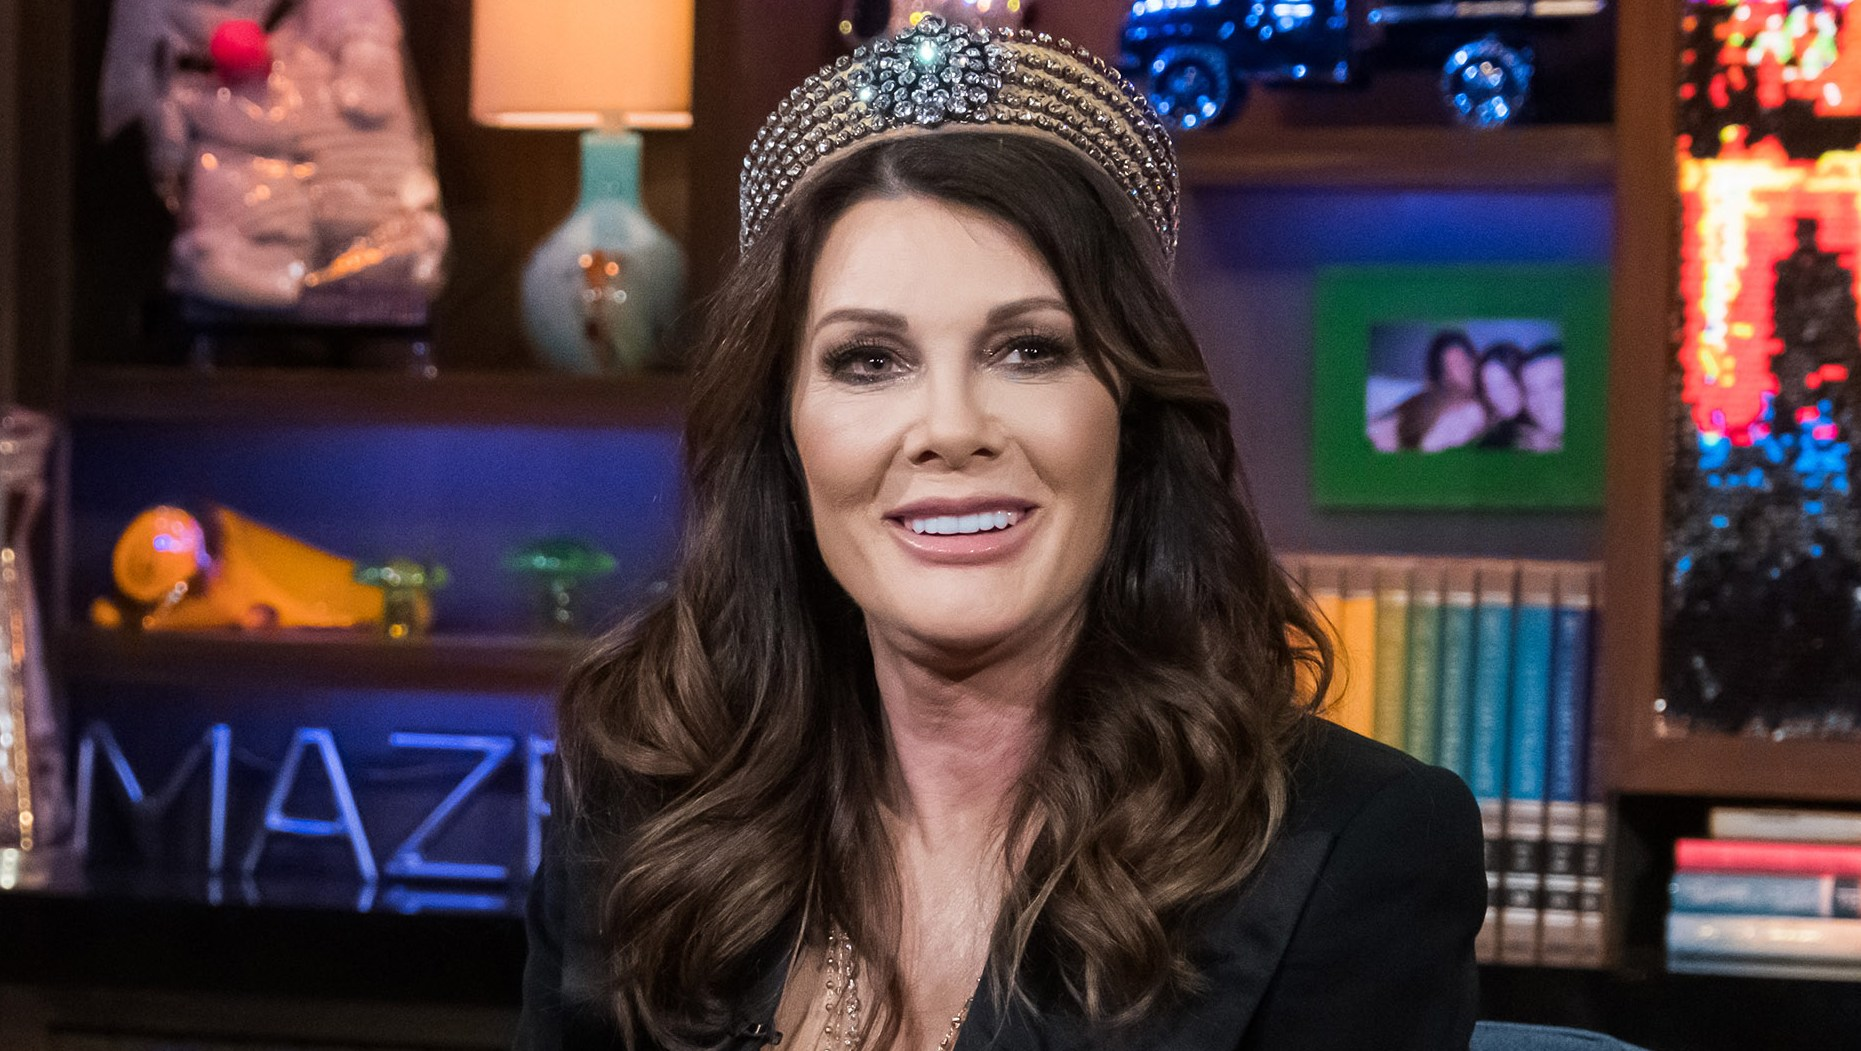 Lisa Vanderpump On Possible 'RHOBH' Exit